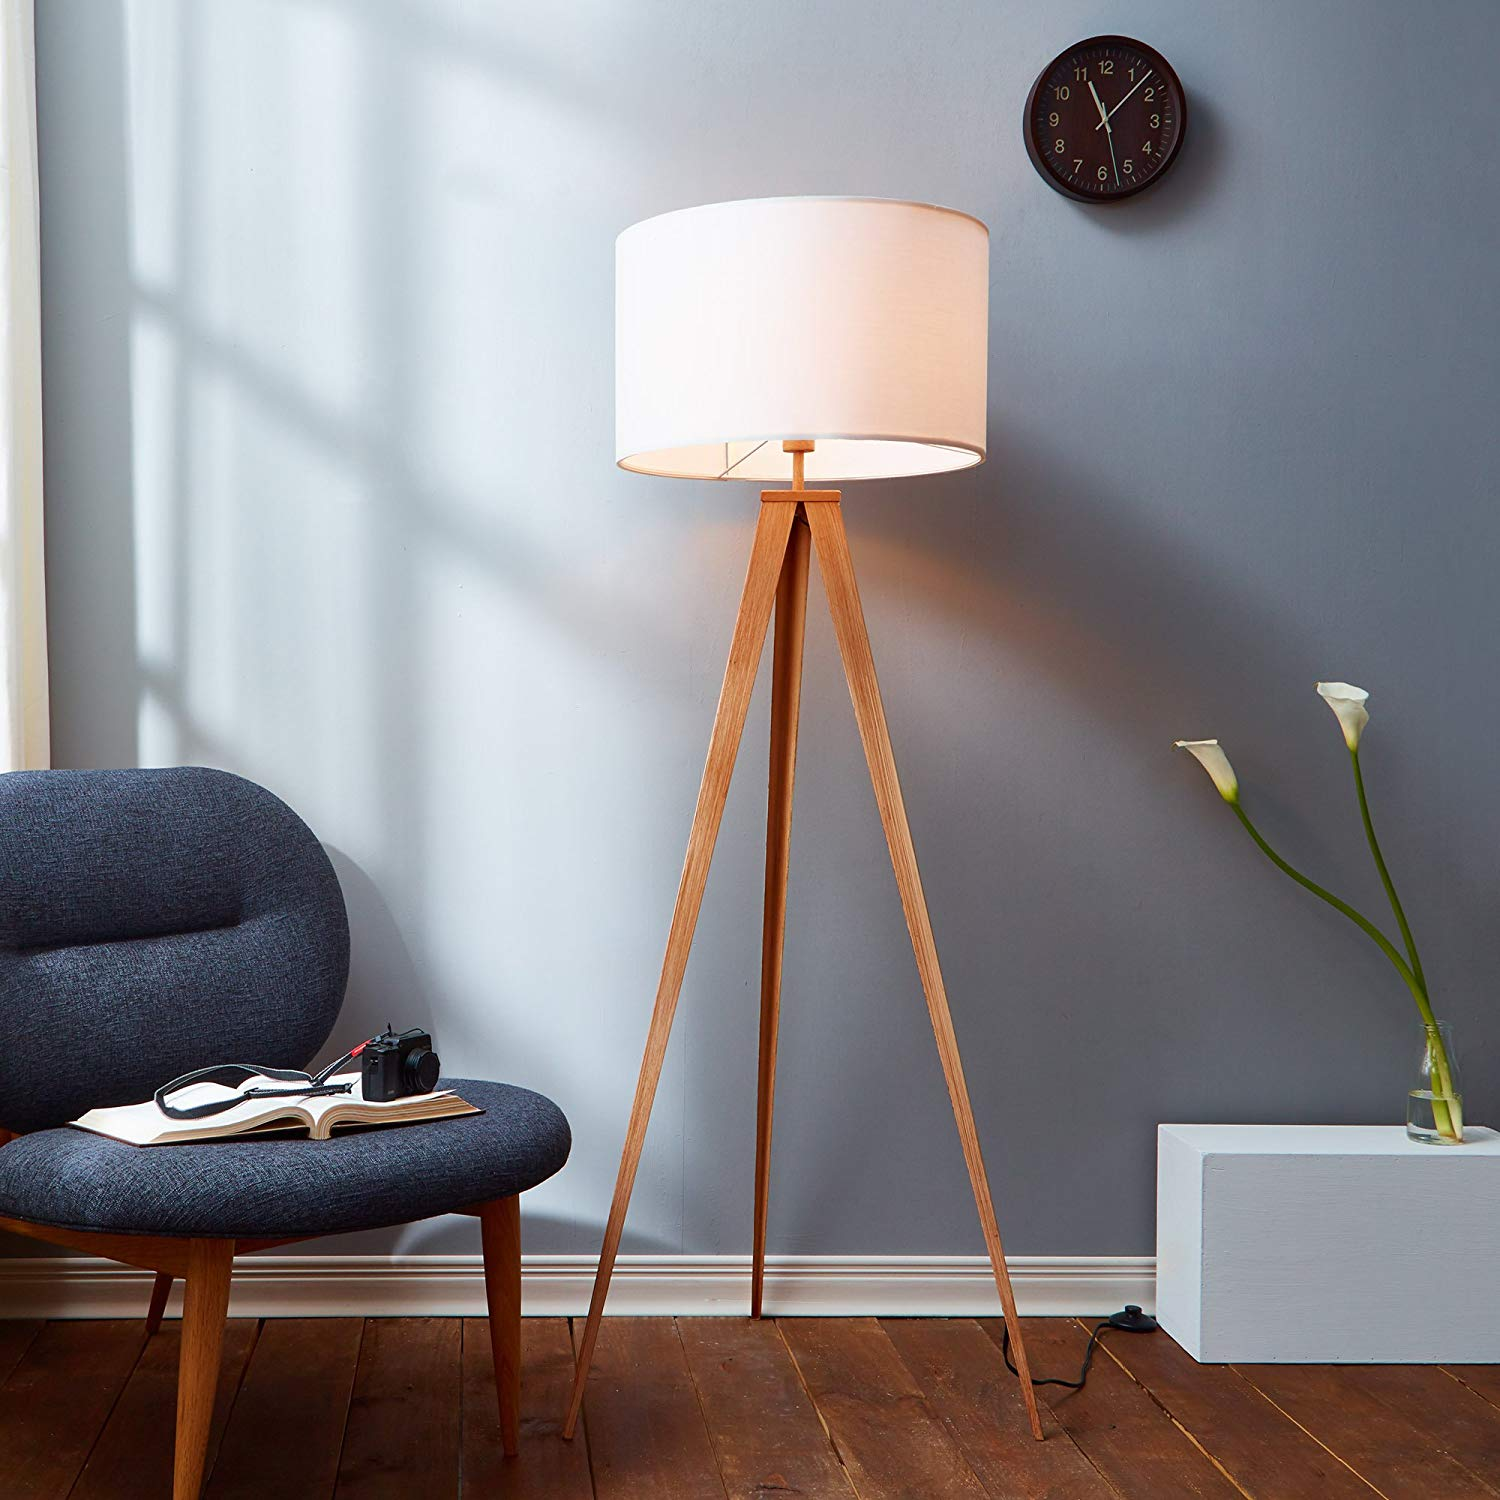 Top 10 Best Led Floor Lamps in 2020 Reviews | Buying Guide